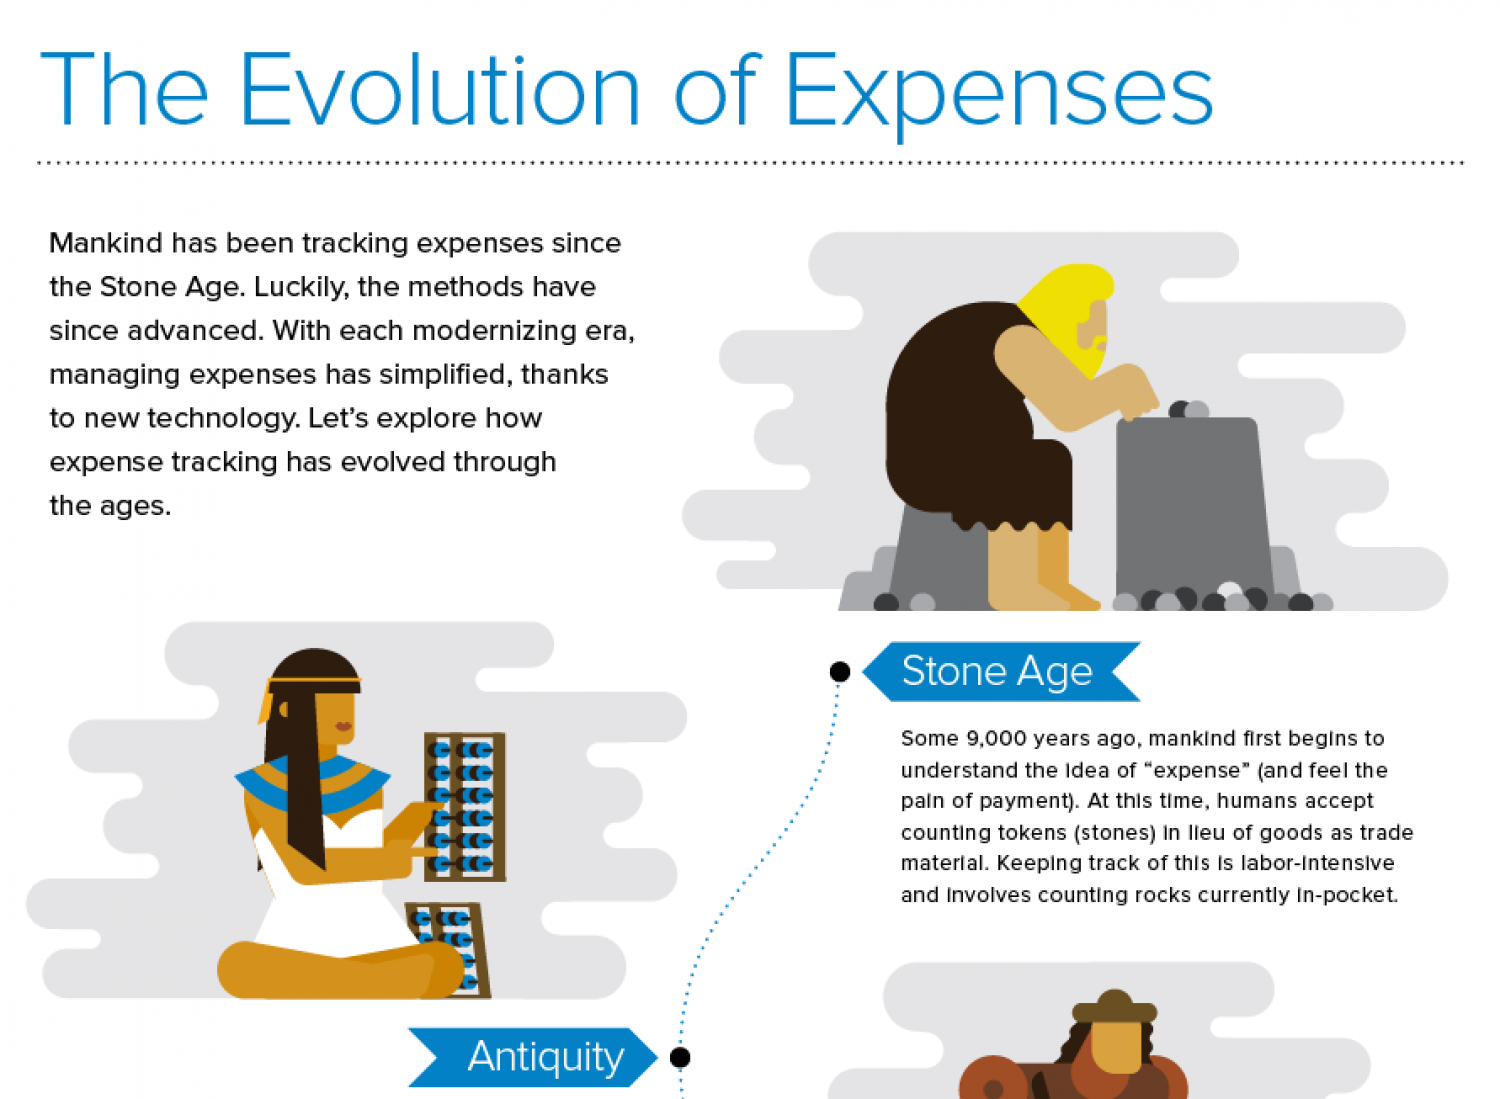 The Evolution of Expenses Infographic